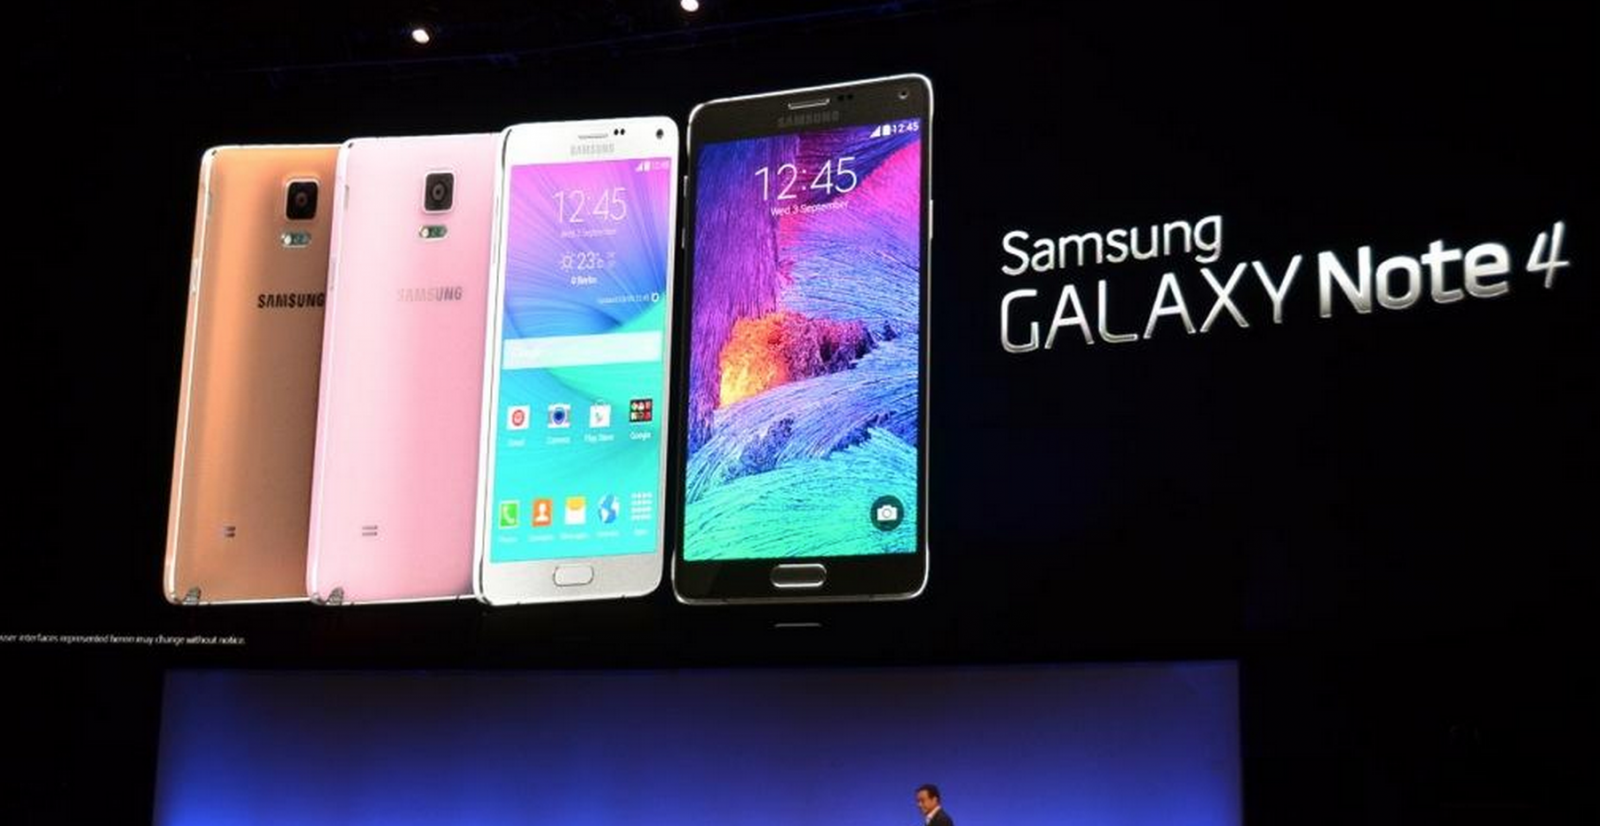 Samsung Galaxy Note 4 Launched